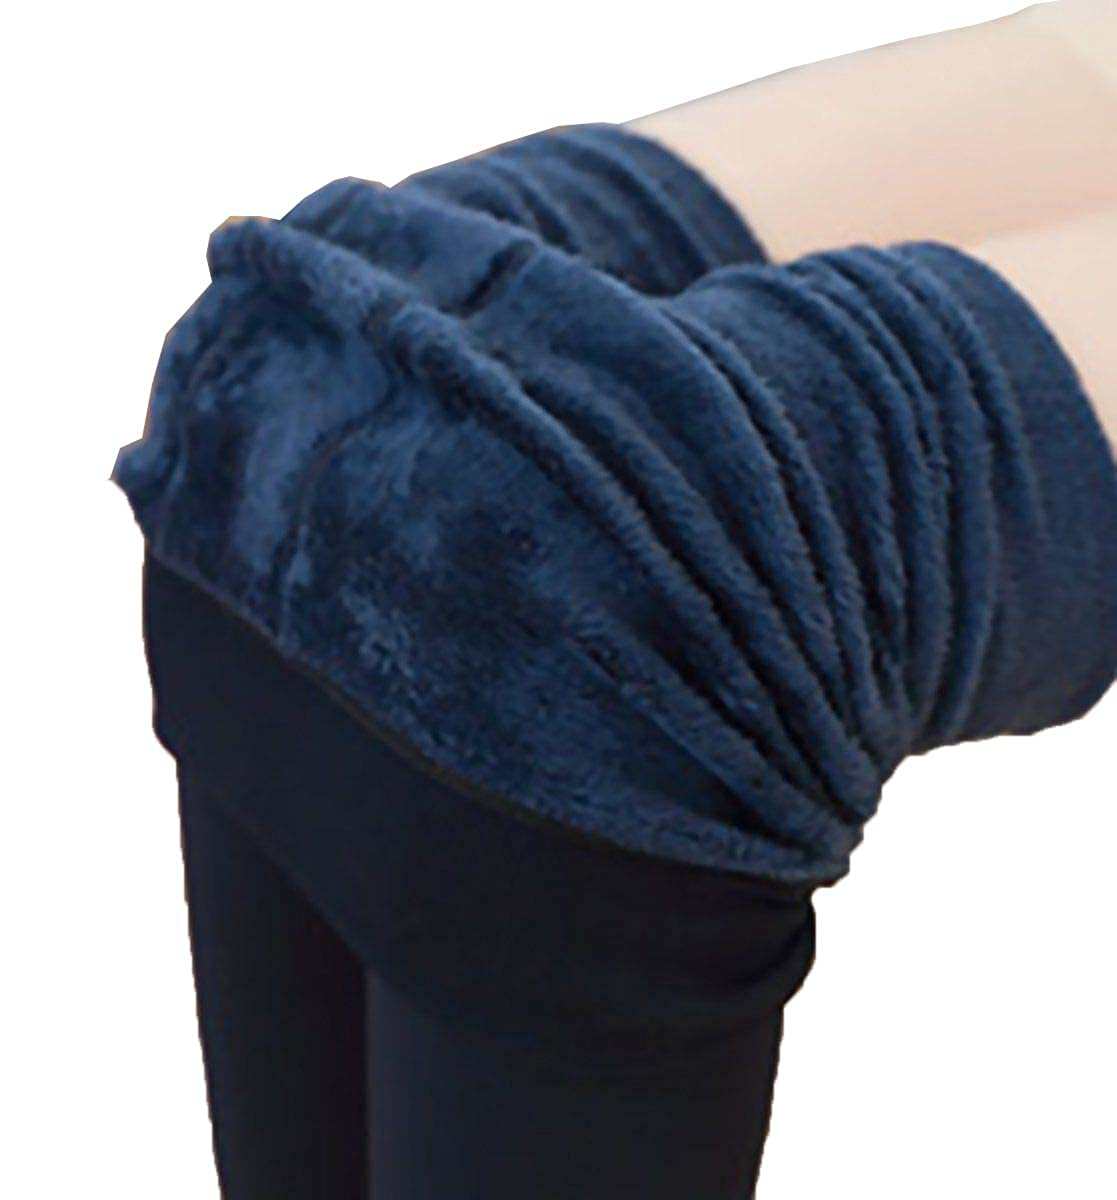 USGreatgorgeous Women Winter Thick Warm Fleece Lined Thermal Stretchy Leggings Pants Full Length Stockings